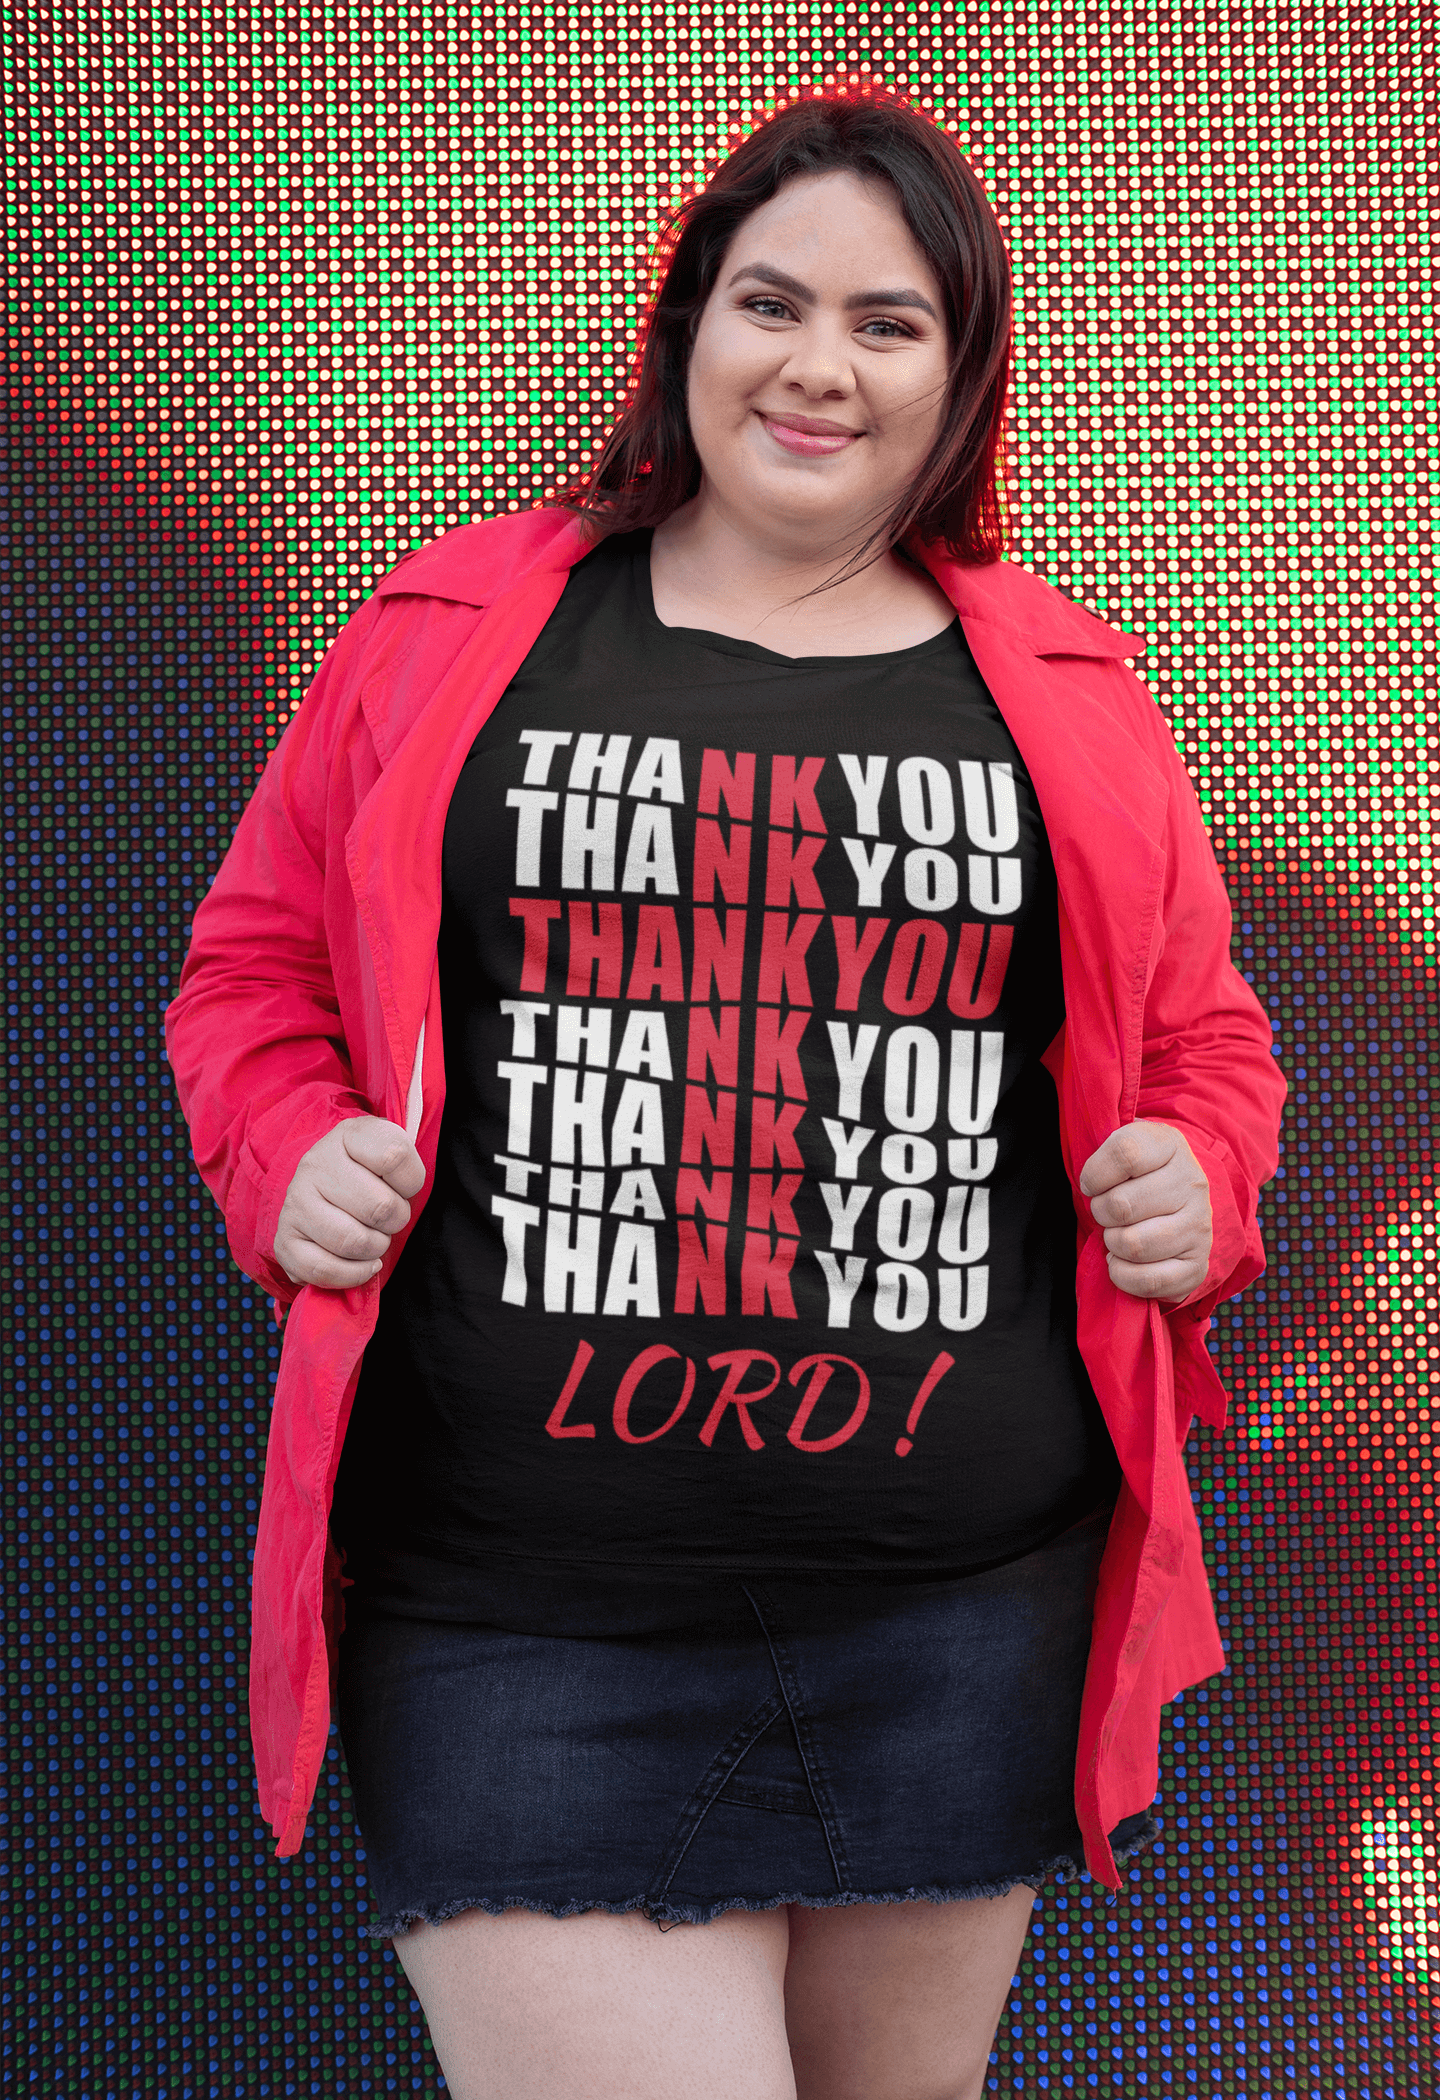 Thank You Lord! Prayer Tee - Black